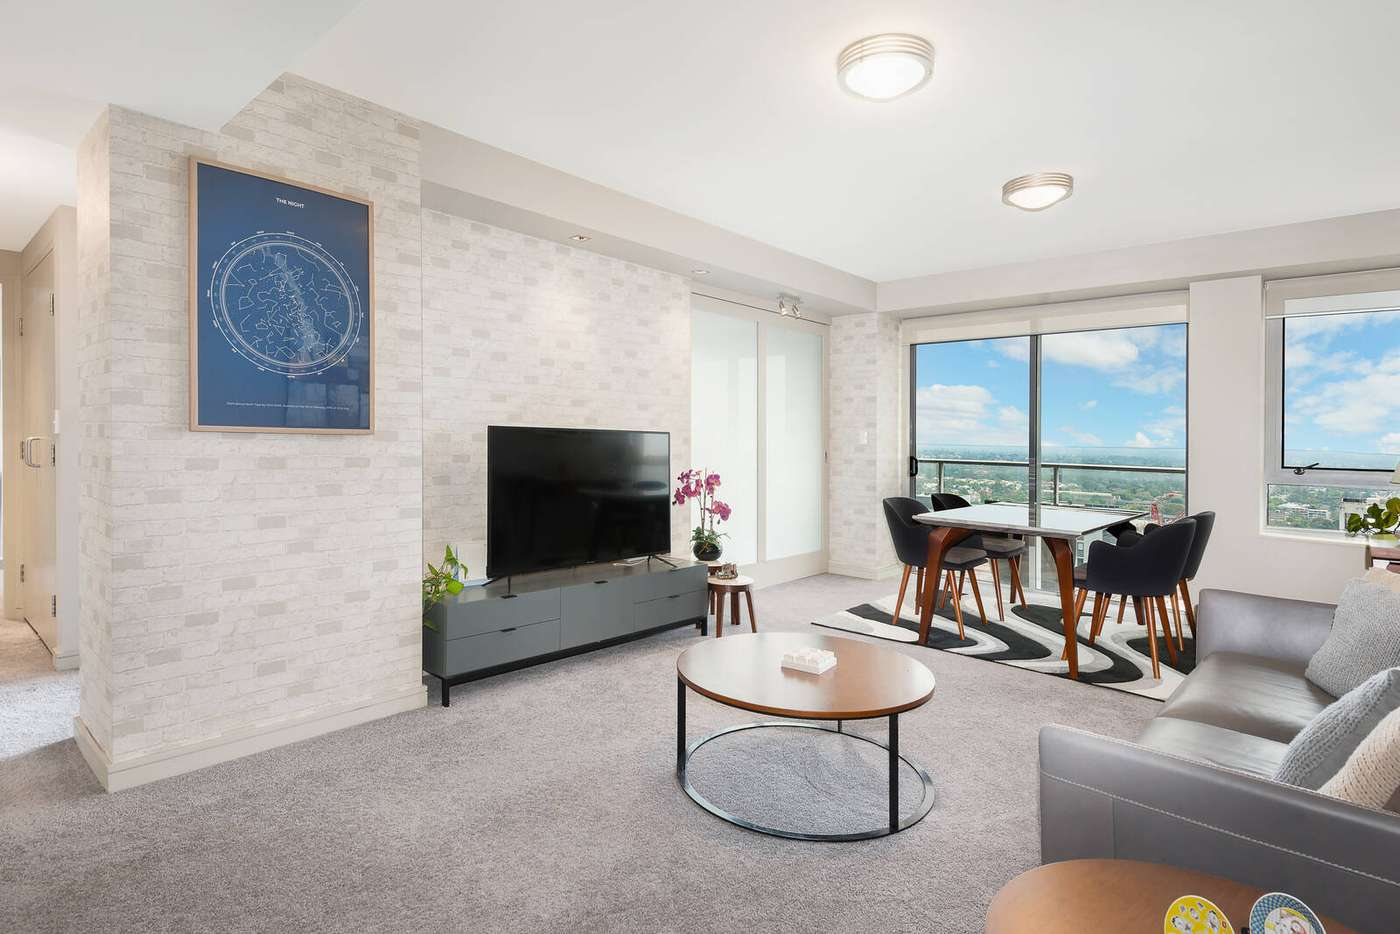 Main view of Homely apartment listing, 3203/79-81 Berry Street, North Sydney NSW 2060